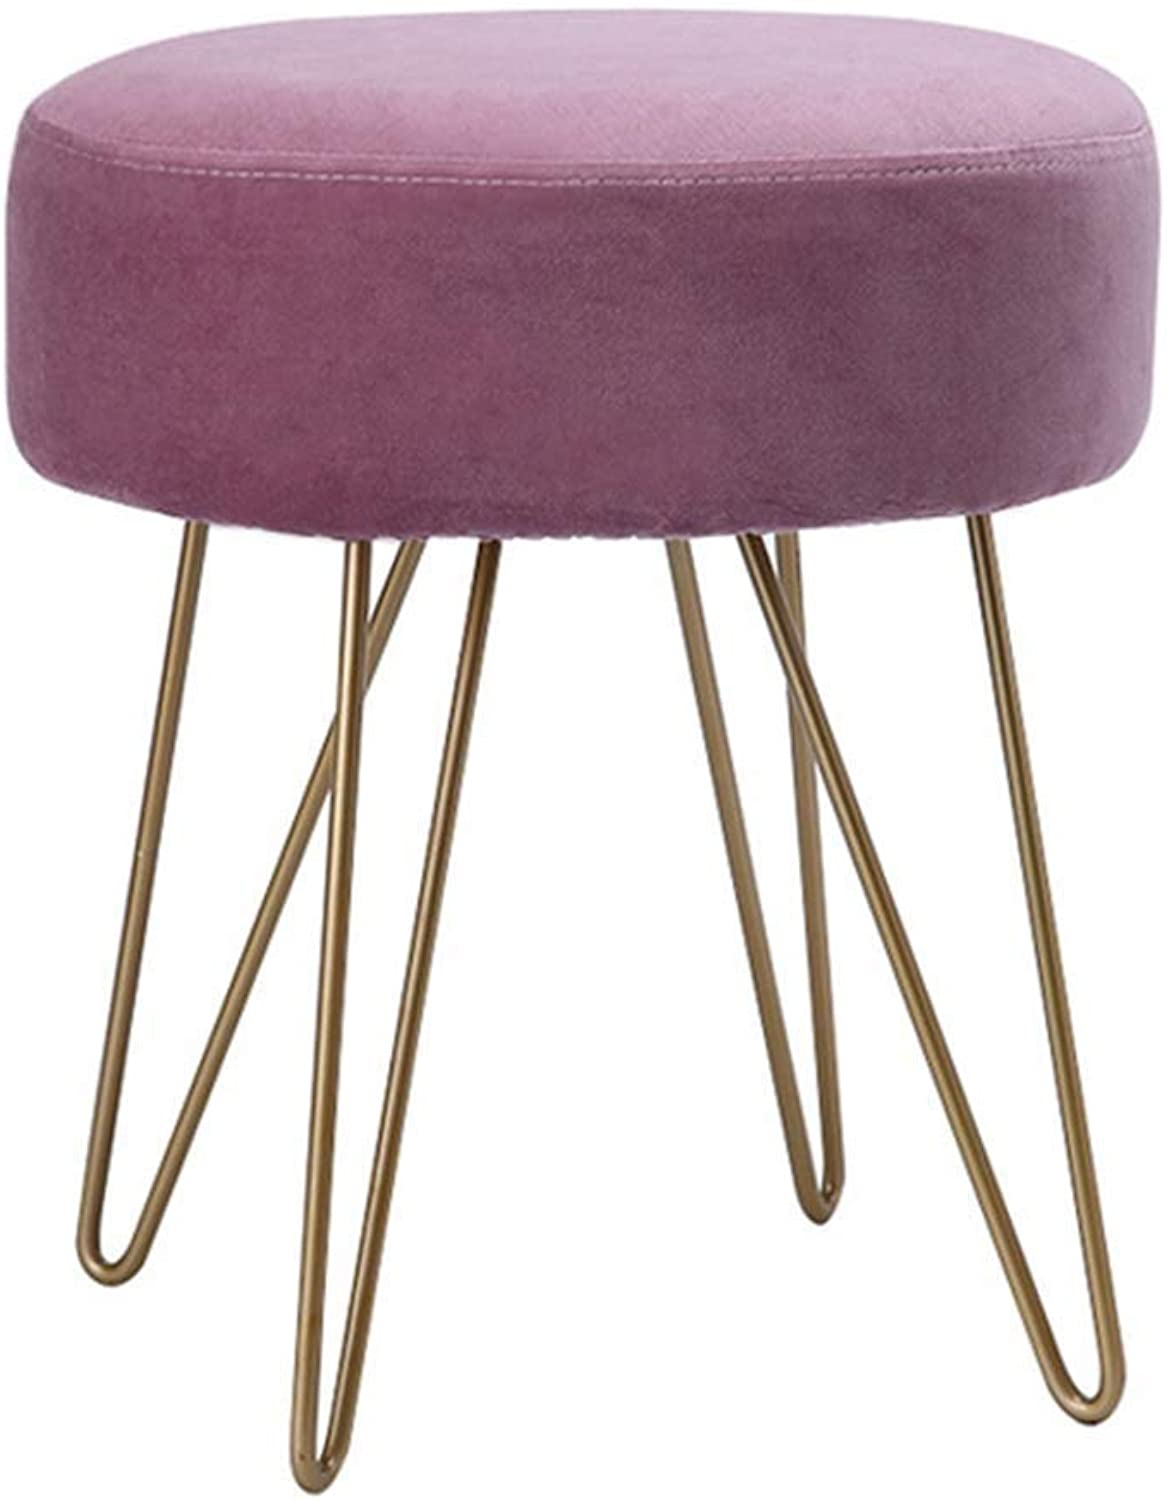 YJLGRYF Home Footstools Round Creativity Coffee Table Stool European Style Design Makeup Stool(13.7x13.7x15.7 Inches) (color   Purple)